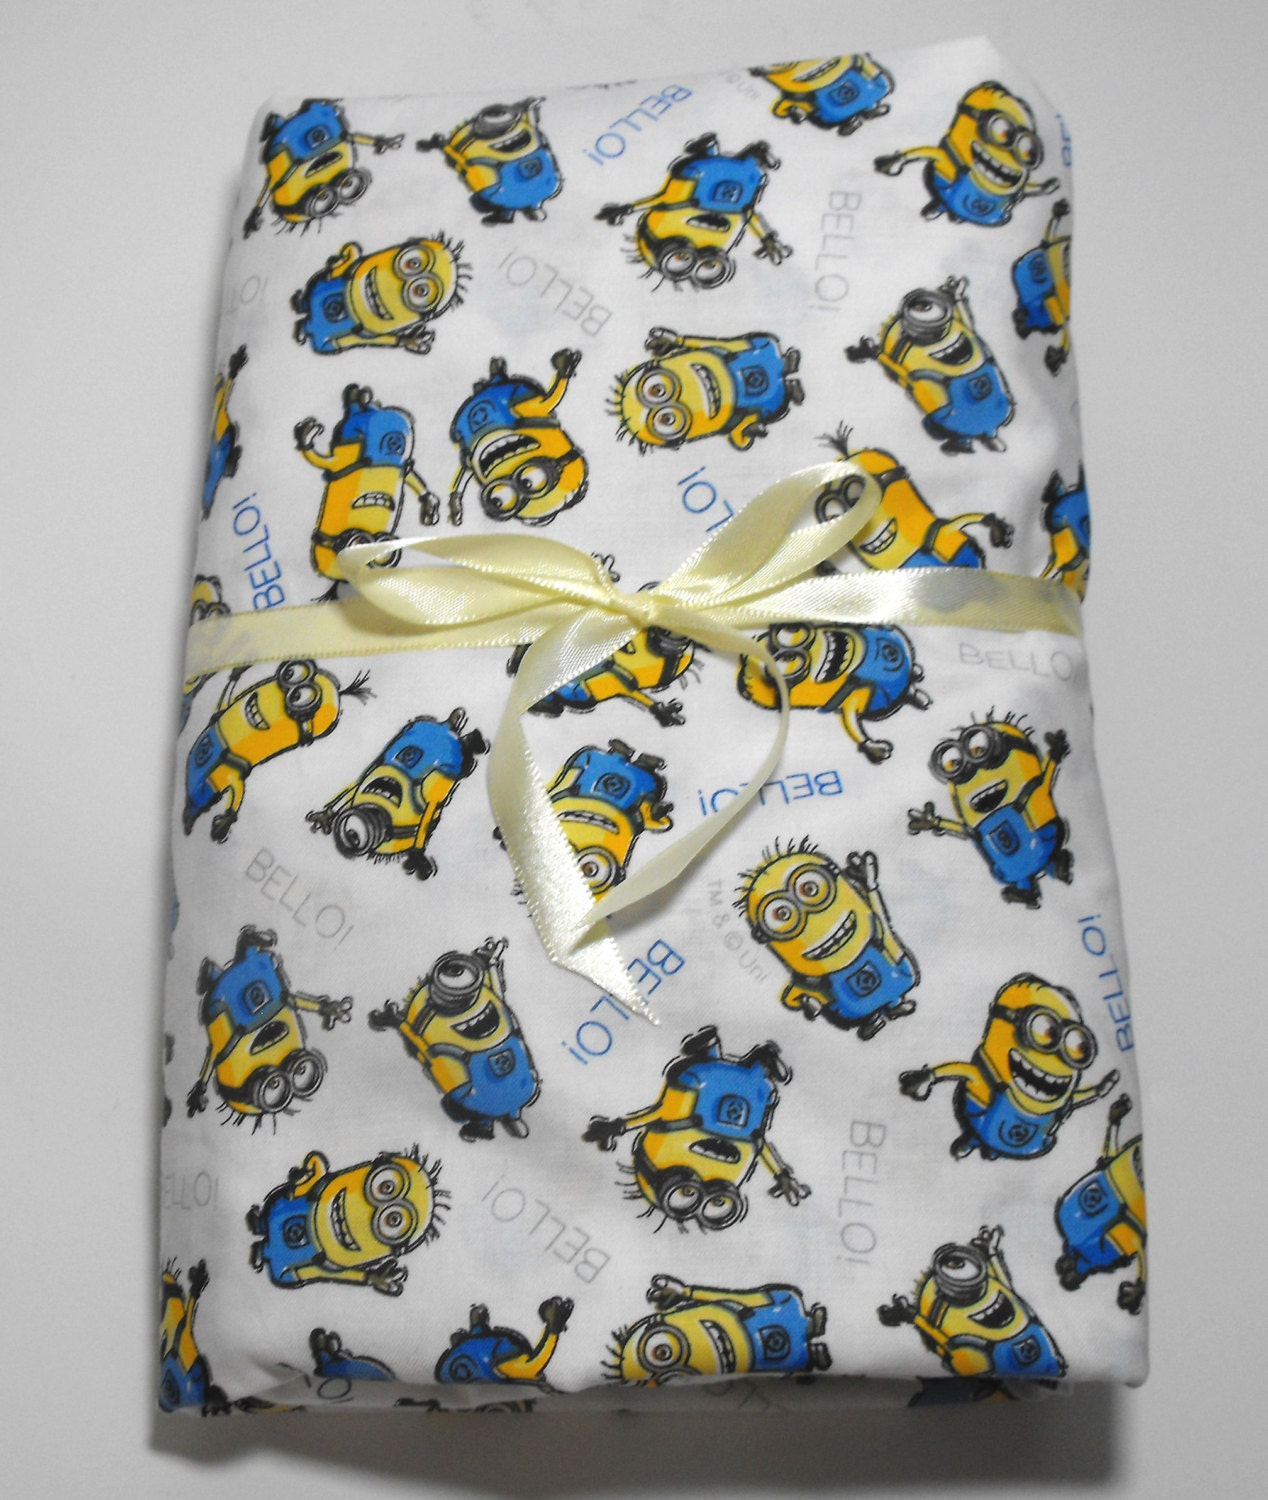 minions fitted sheet set for toddler bed includes fitted sheet